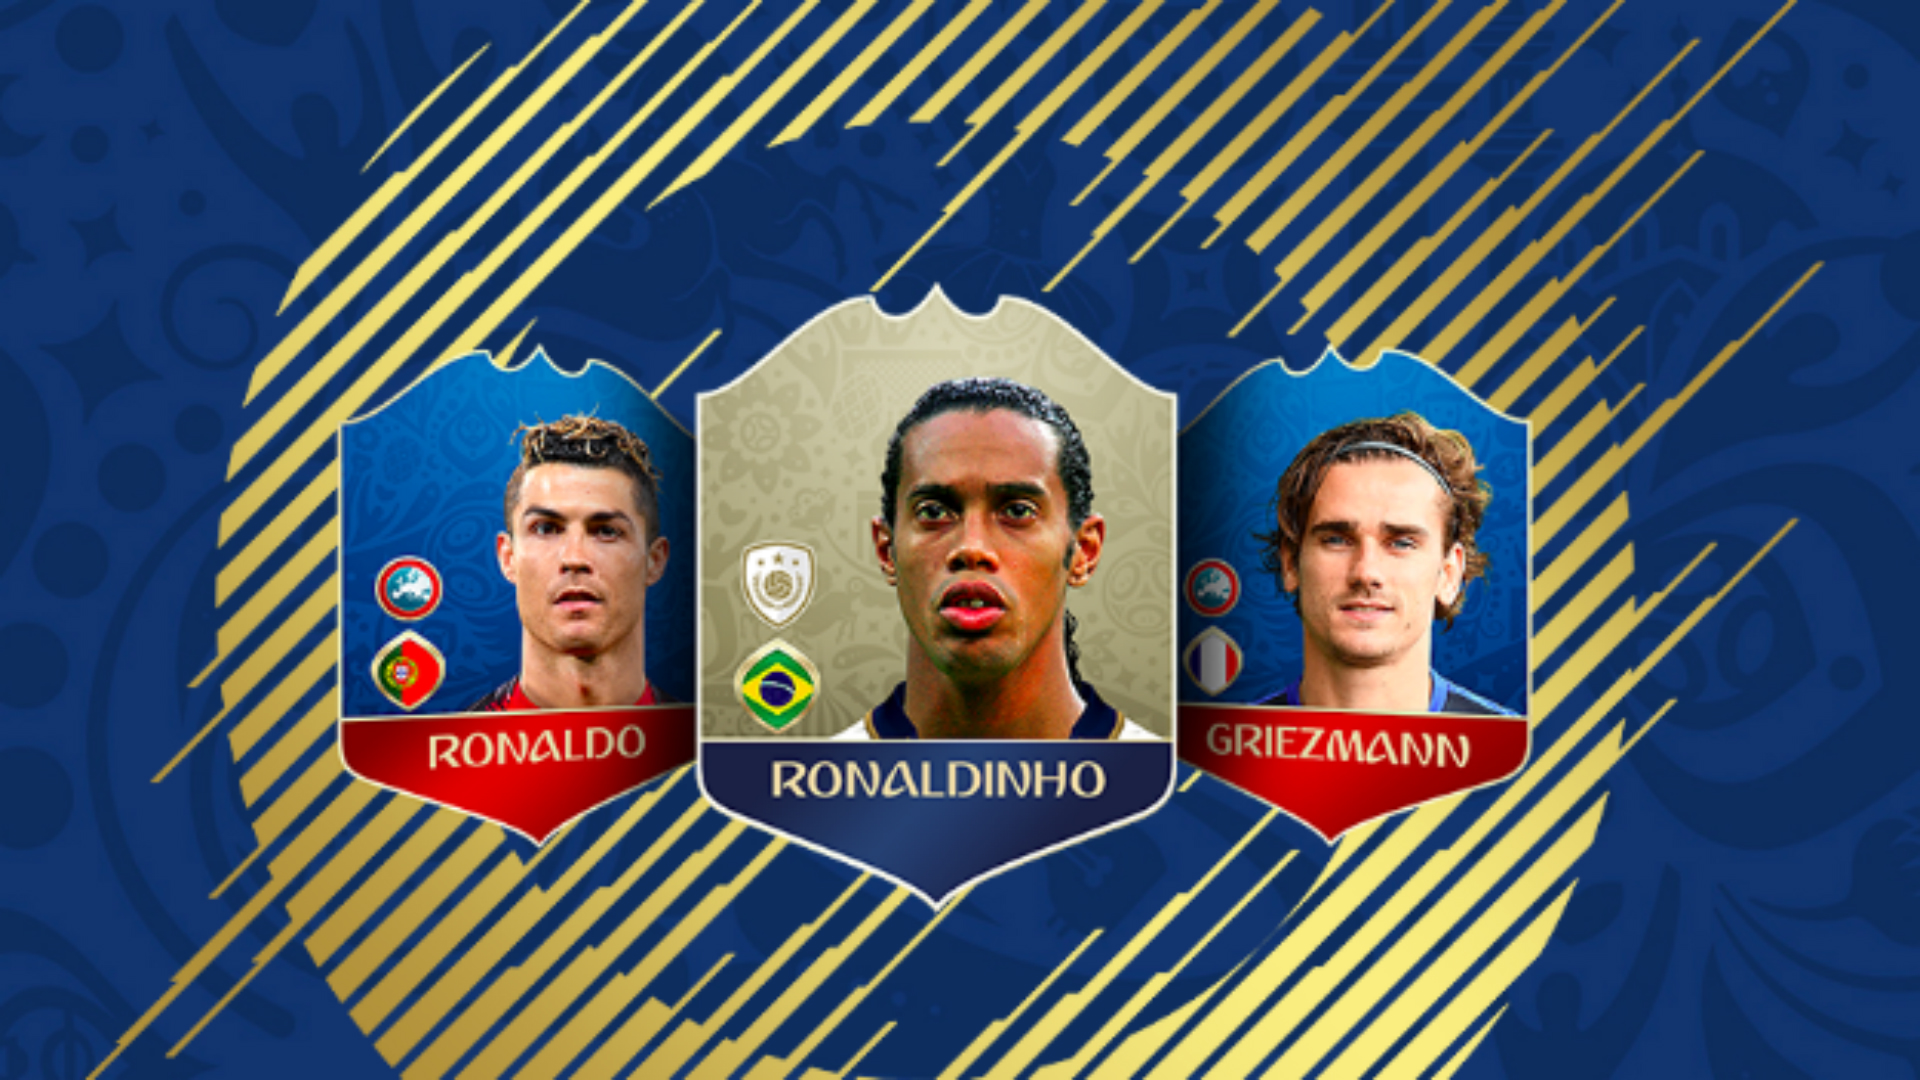 France are going to win the World Cup (according to EA)